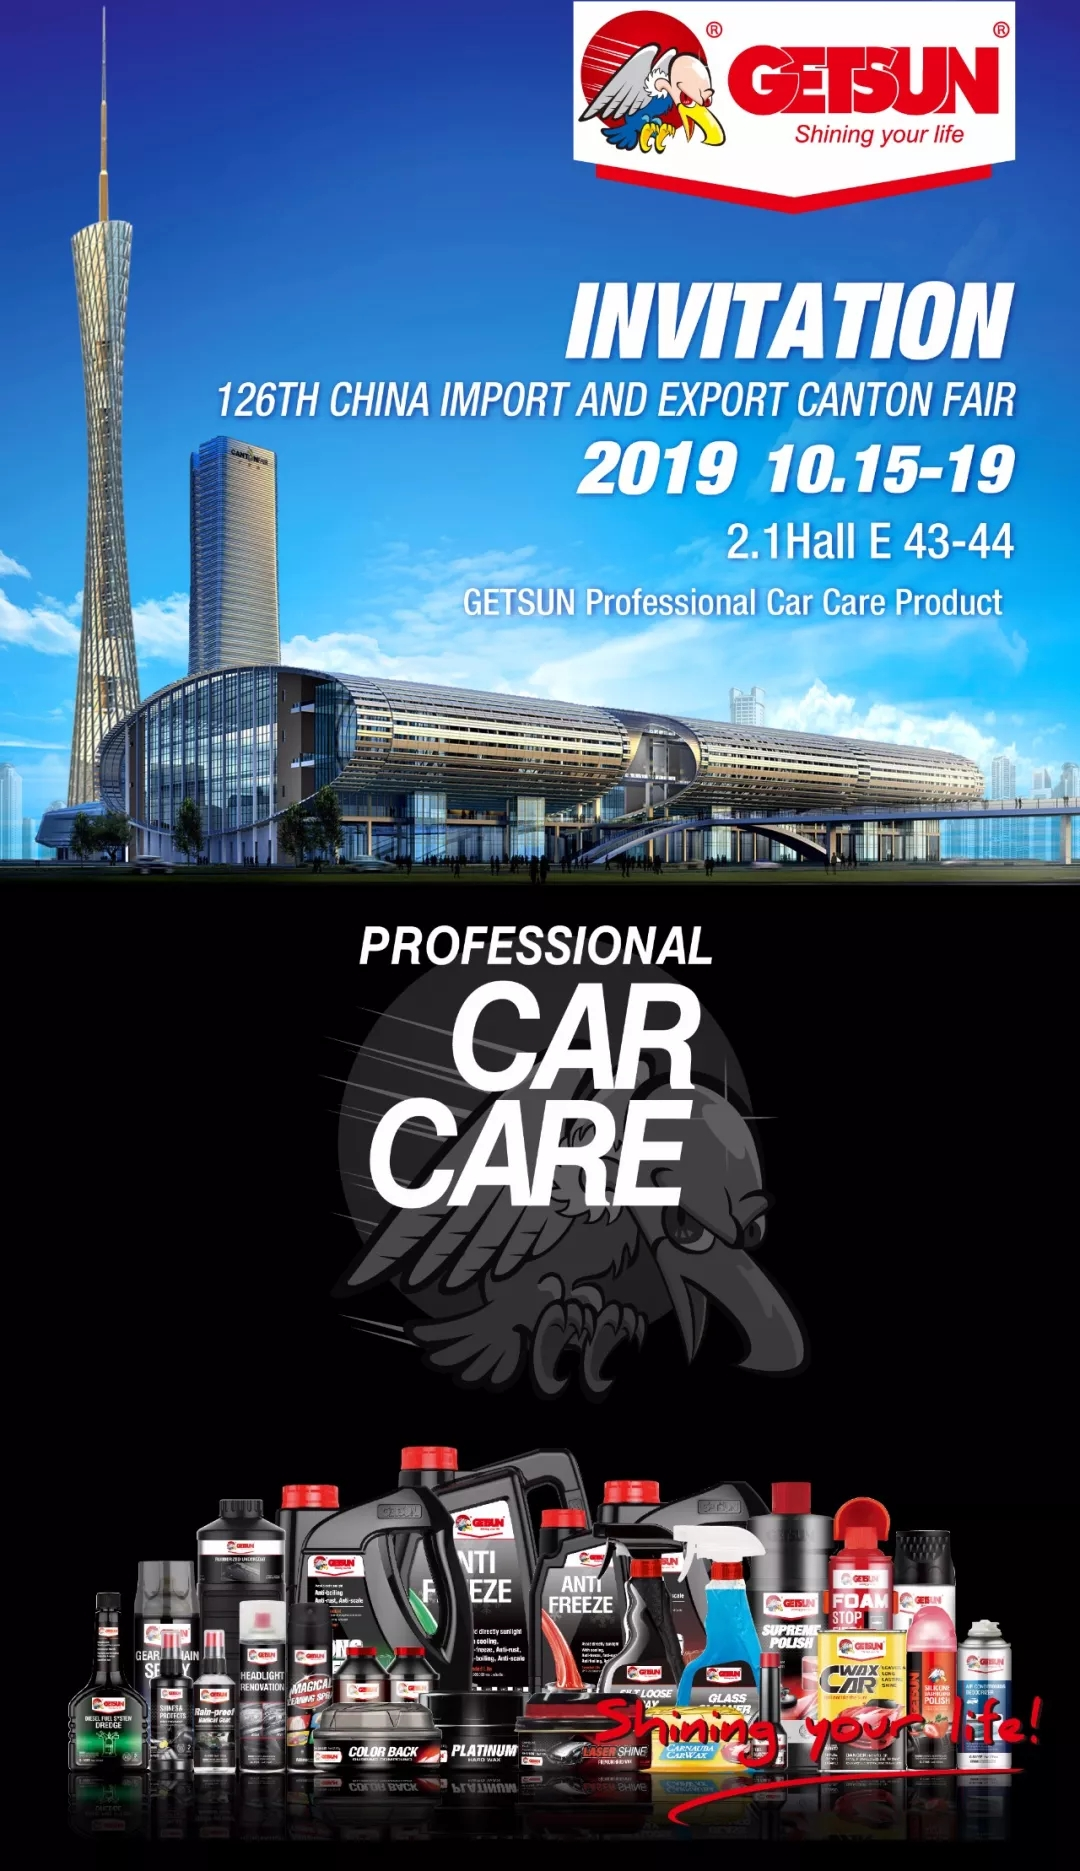 126TH CHINA IMPORT AND EXPORT CANTON FAIR